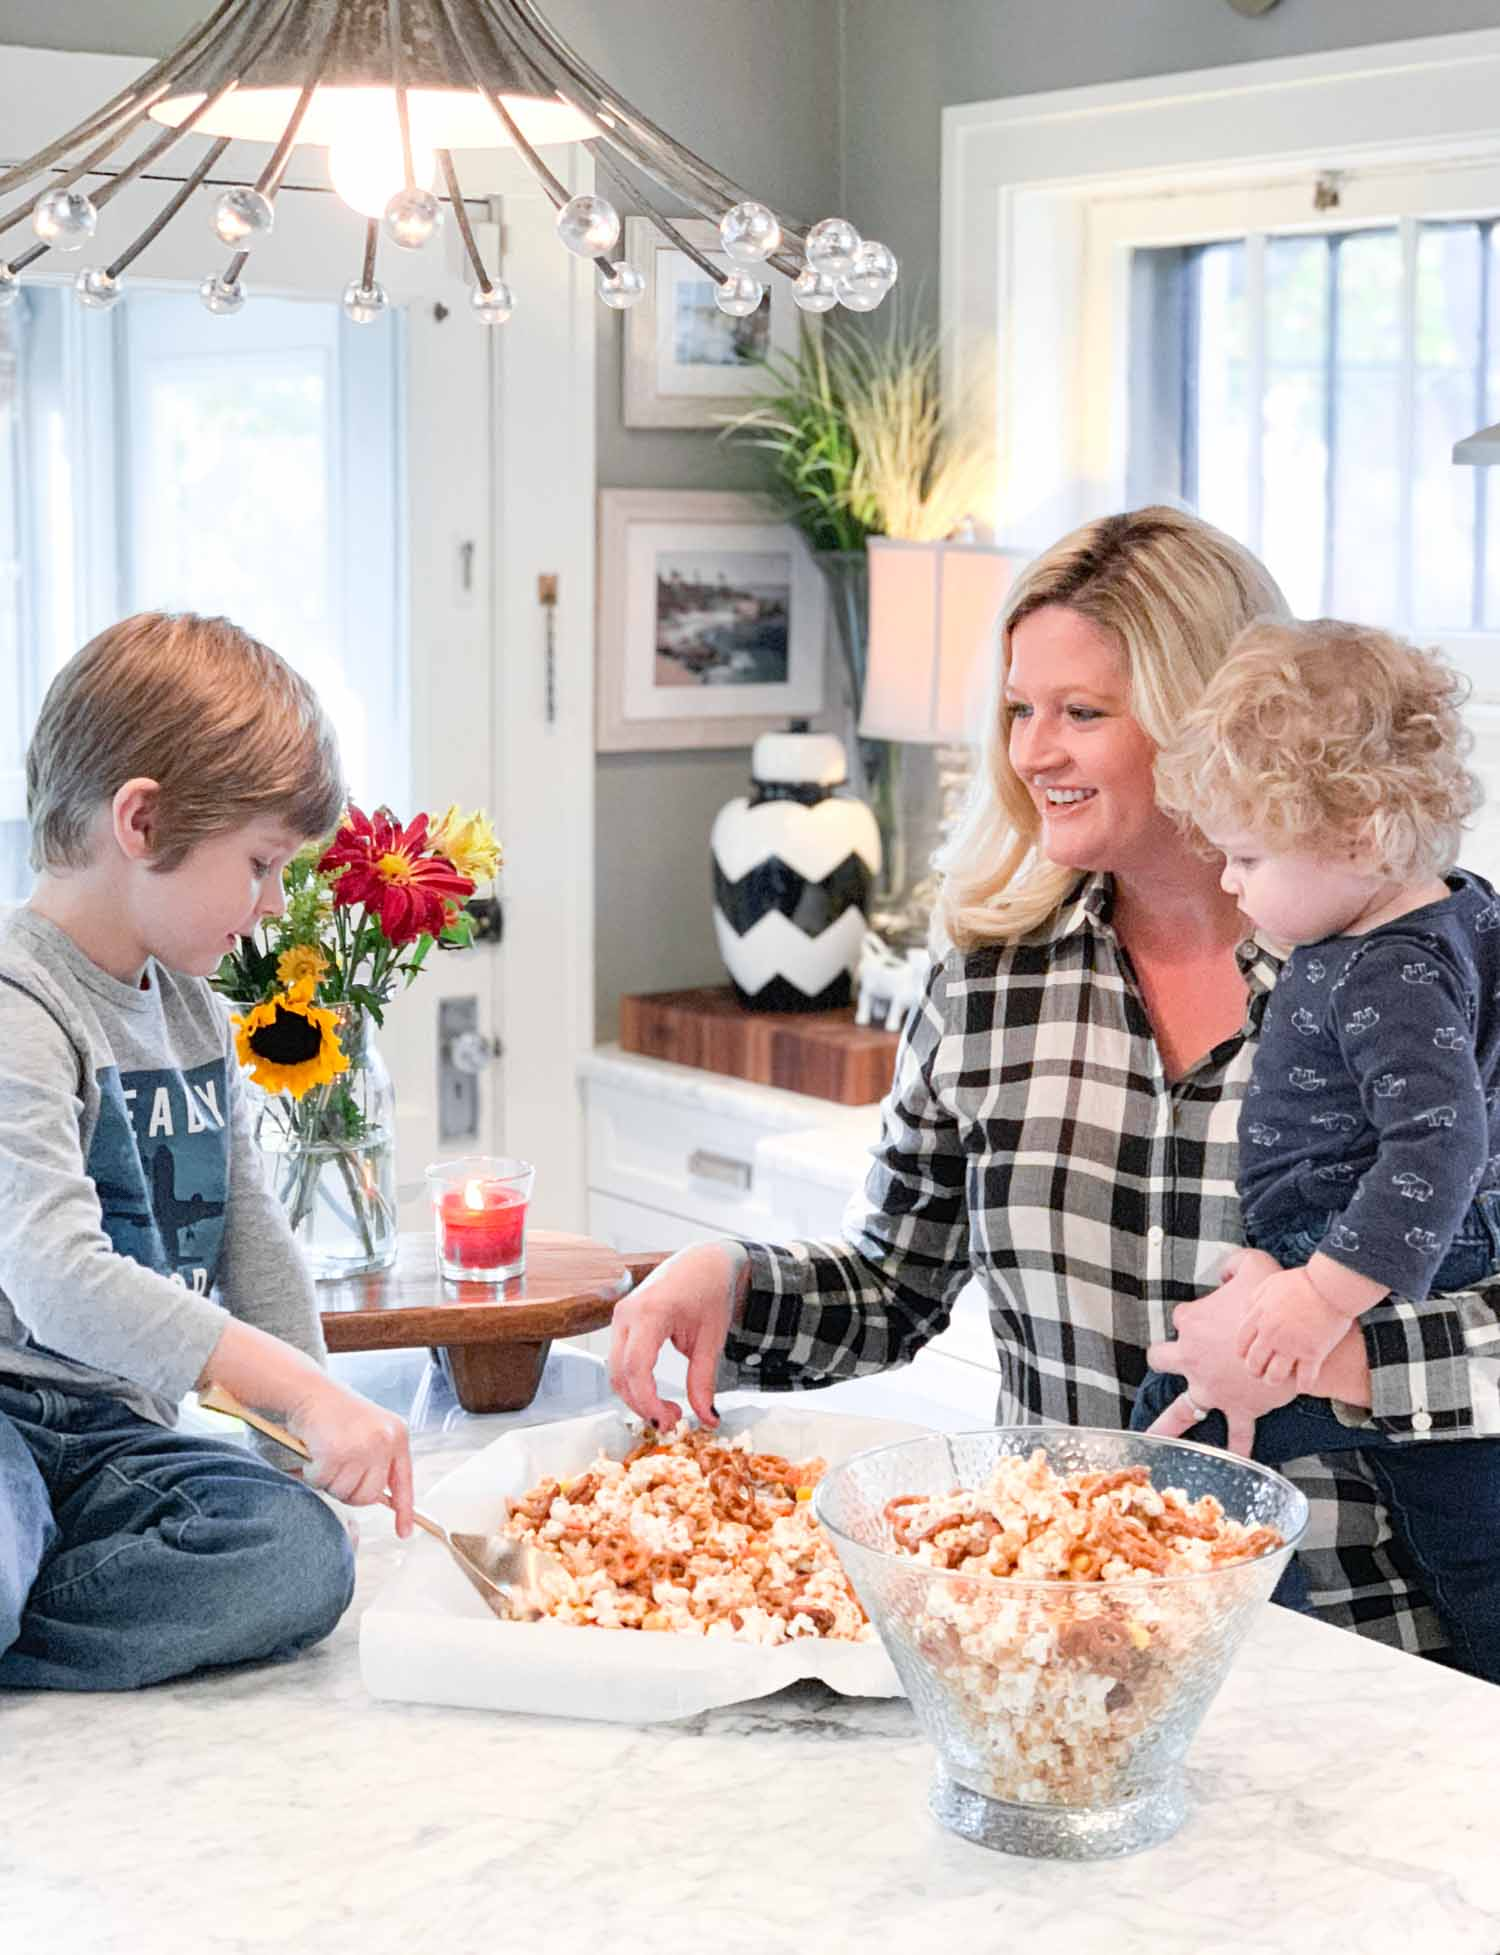 This week we made a candy coated popcorn and pretzel treat together. Having a large island really does make a difference in how our family uses a kitchen.